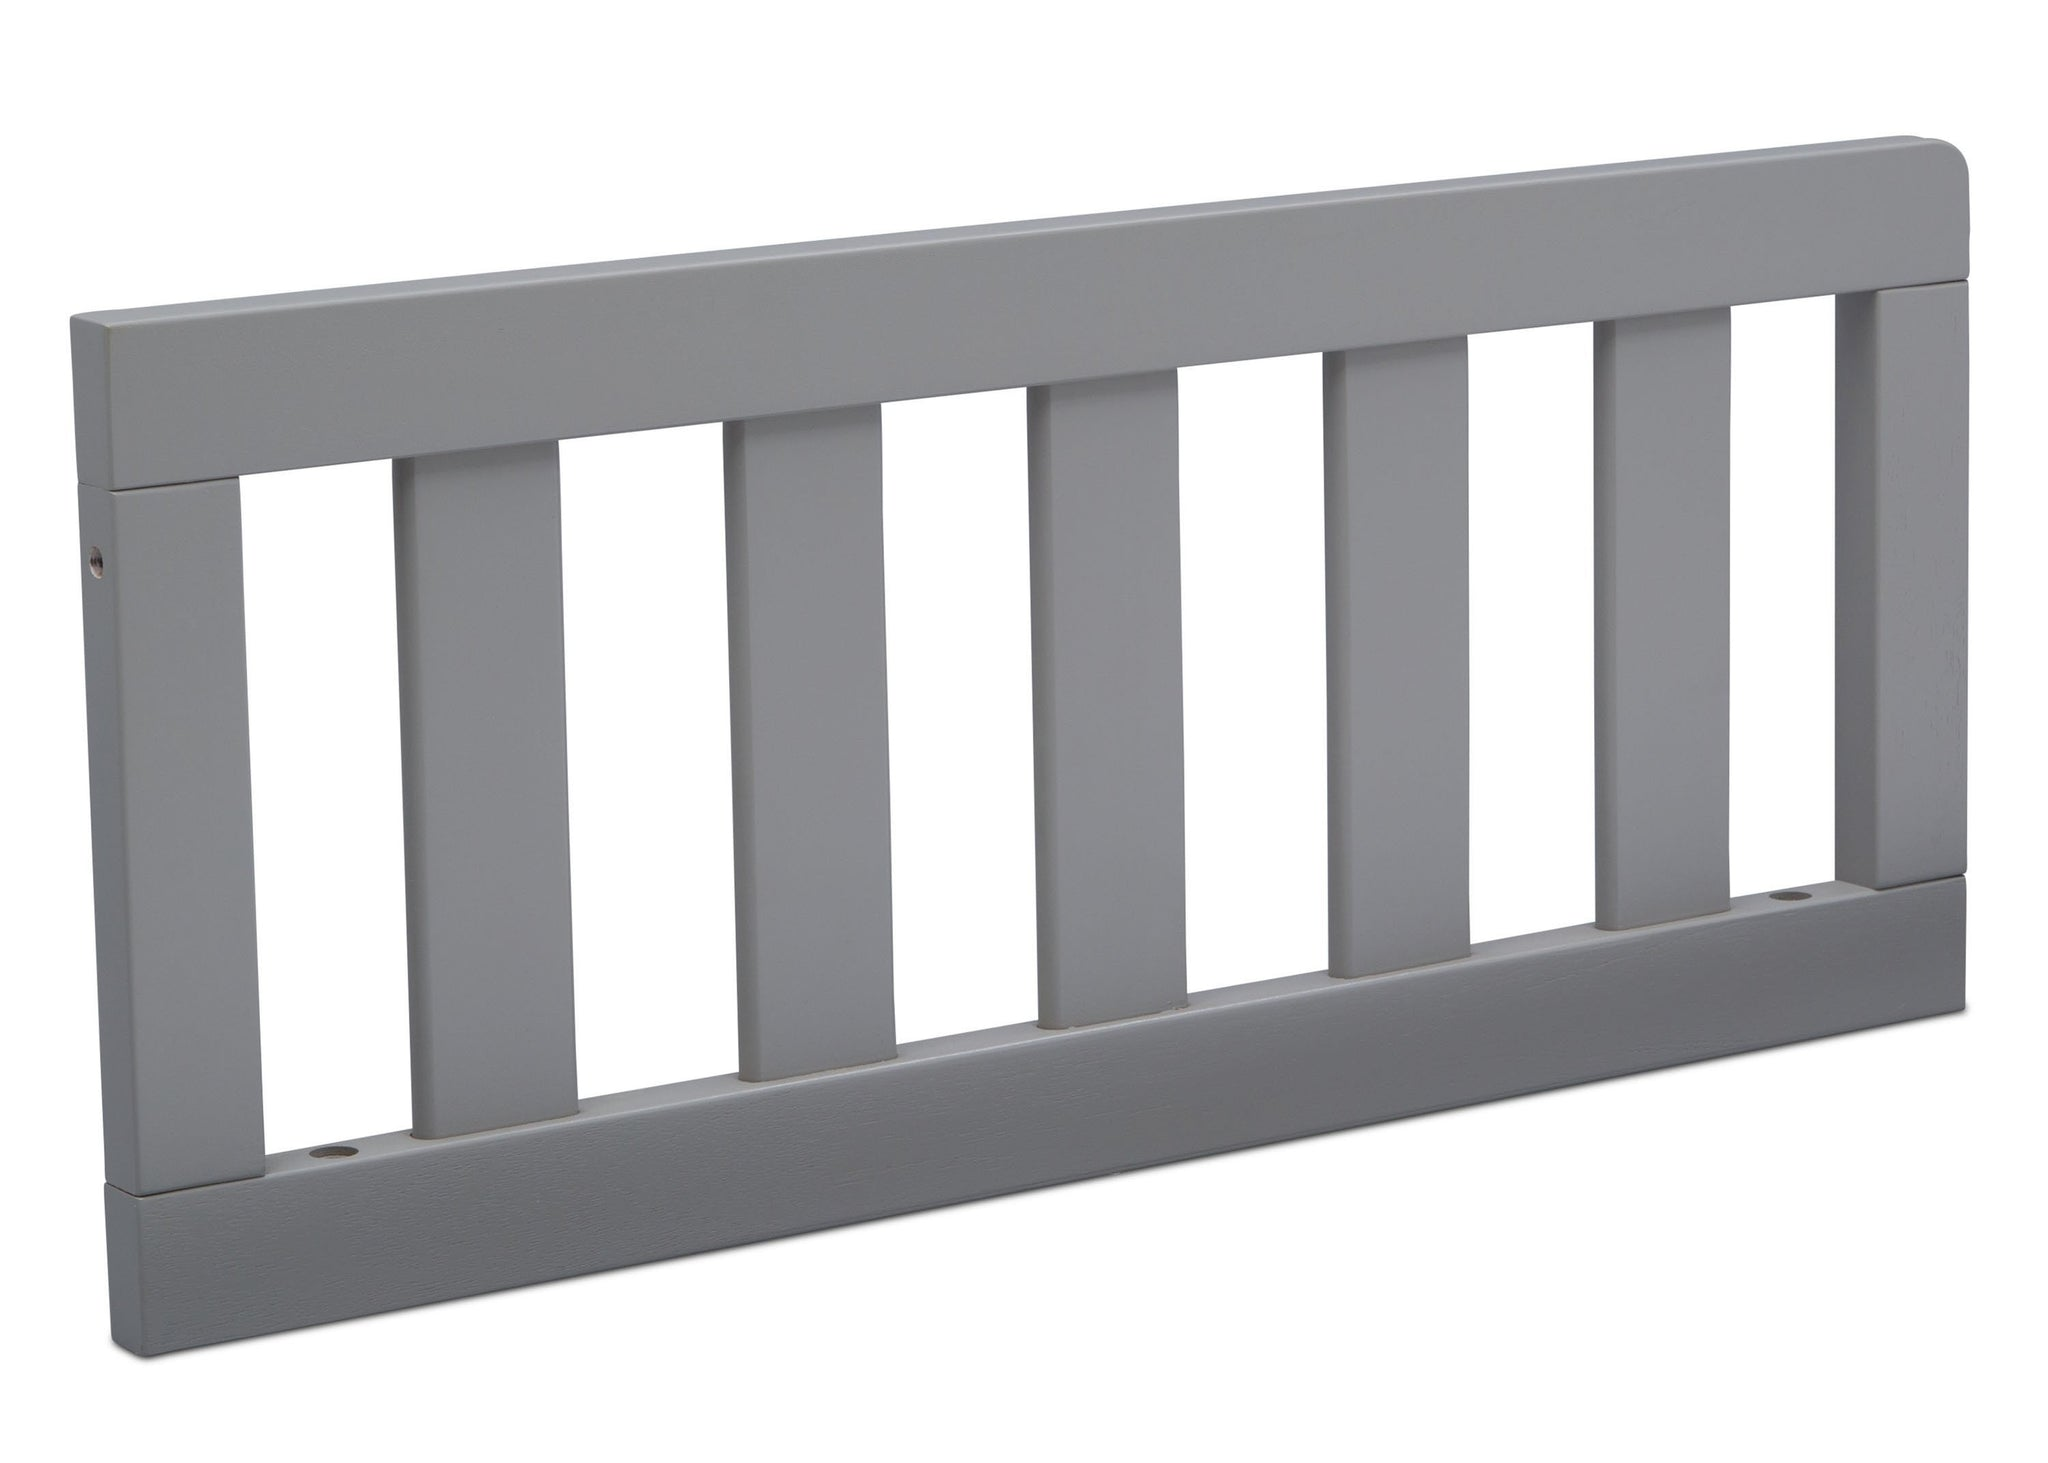 Serta Daybed/Toddler Guardrail Kit (707726) Grey (026) Angle a4a